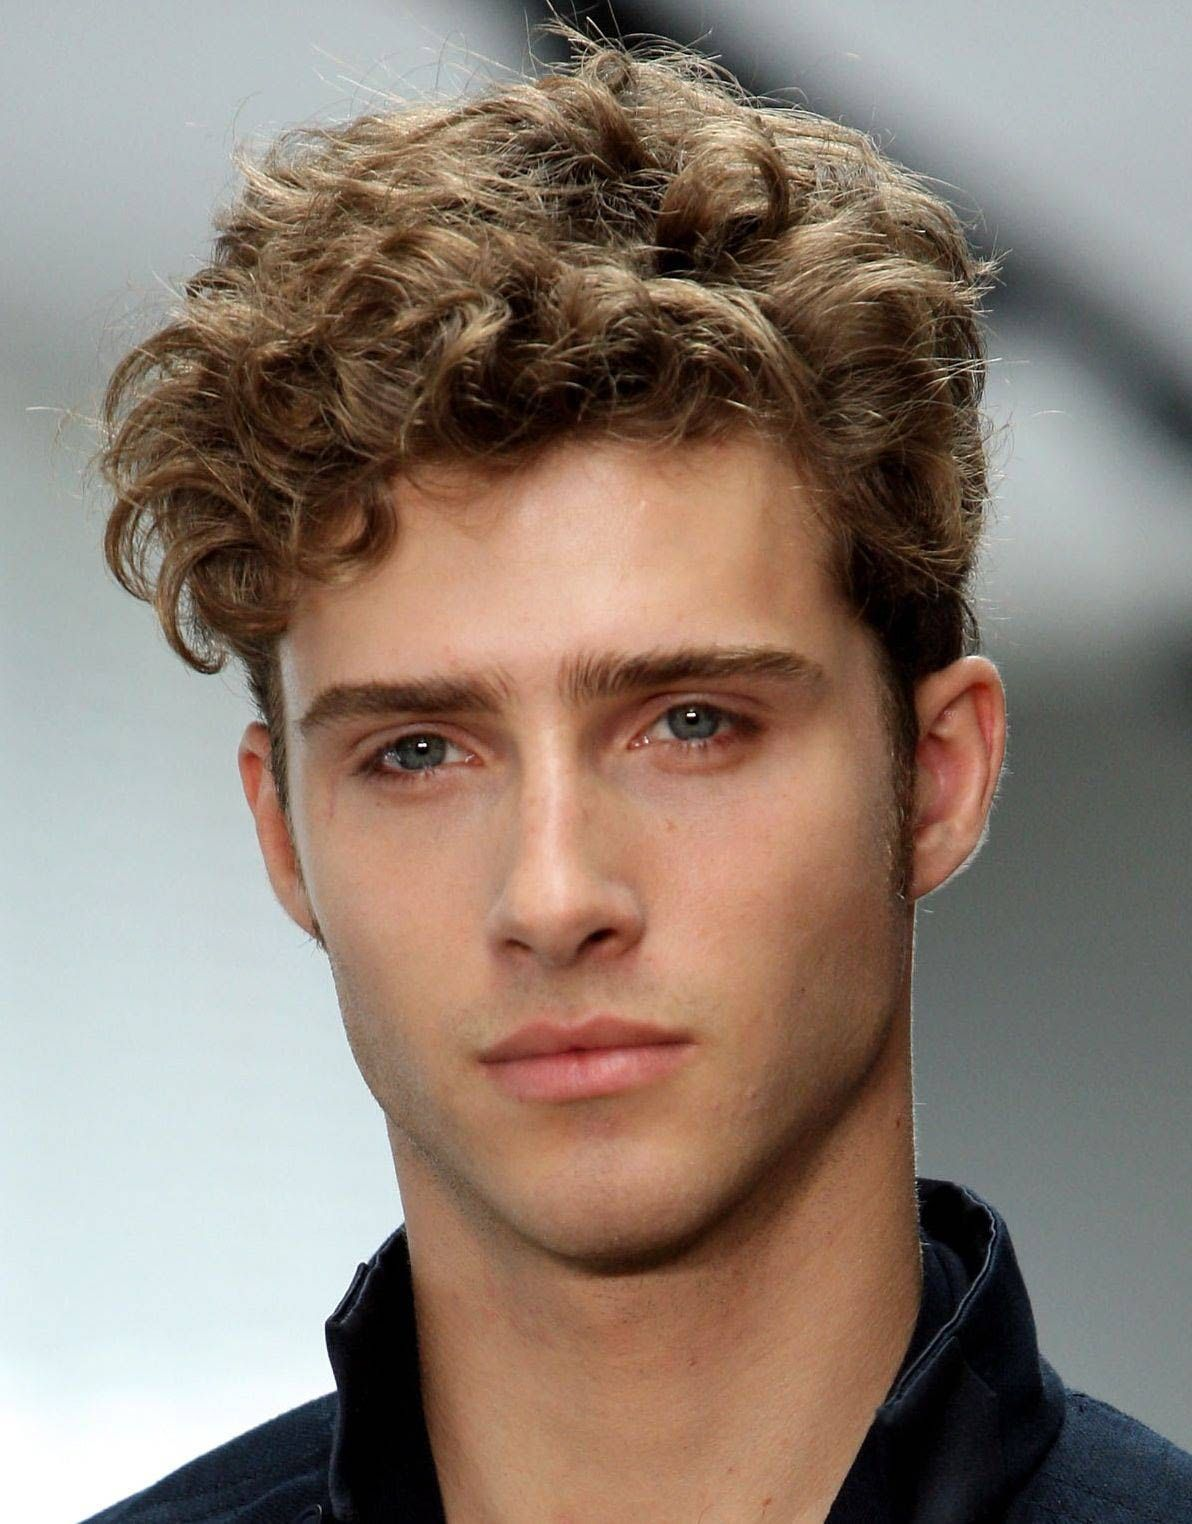 Haircuts For Men With Thick Curly Hair | Menu0027s Curly Hairstyles   Having  Trouble With Your Curly Hair?